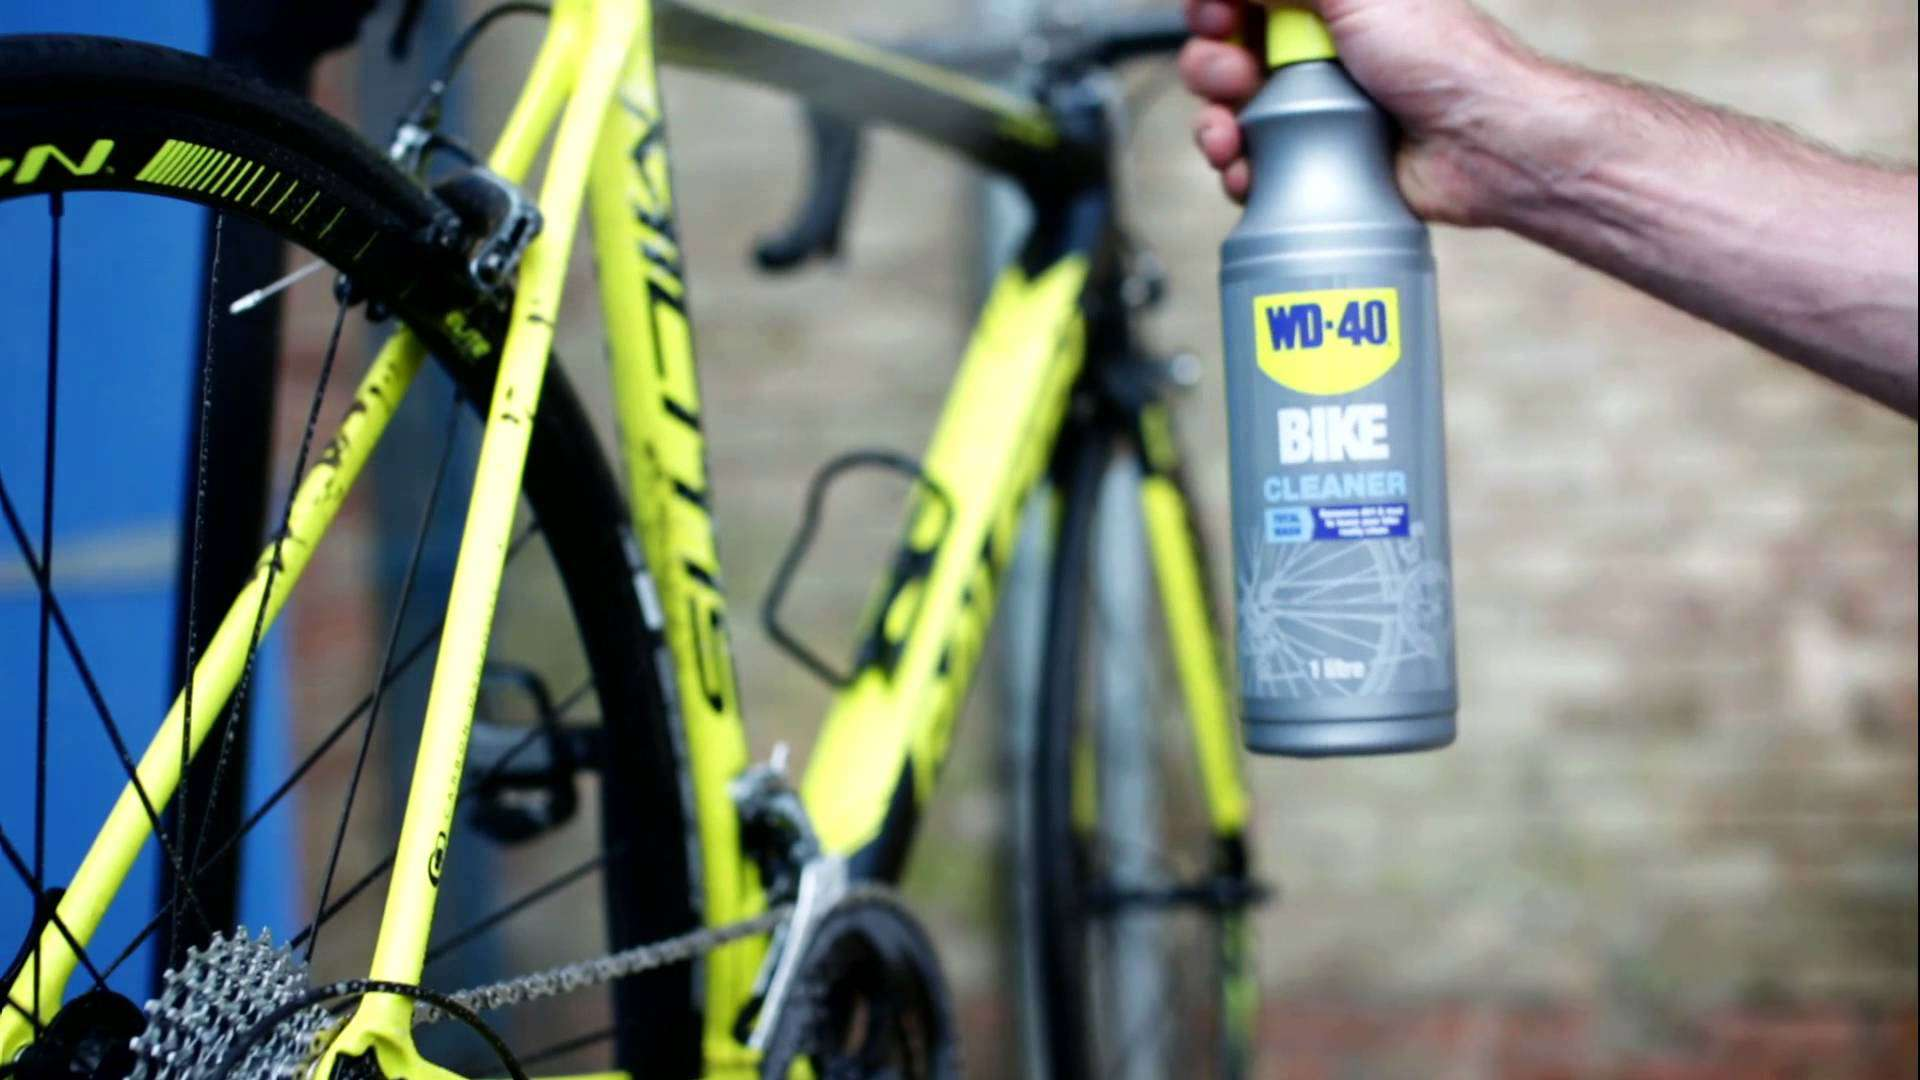 WD-40-BIKE-Reiniger-Roadbike